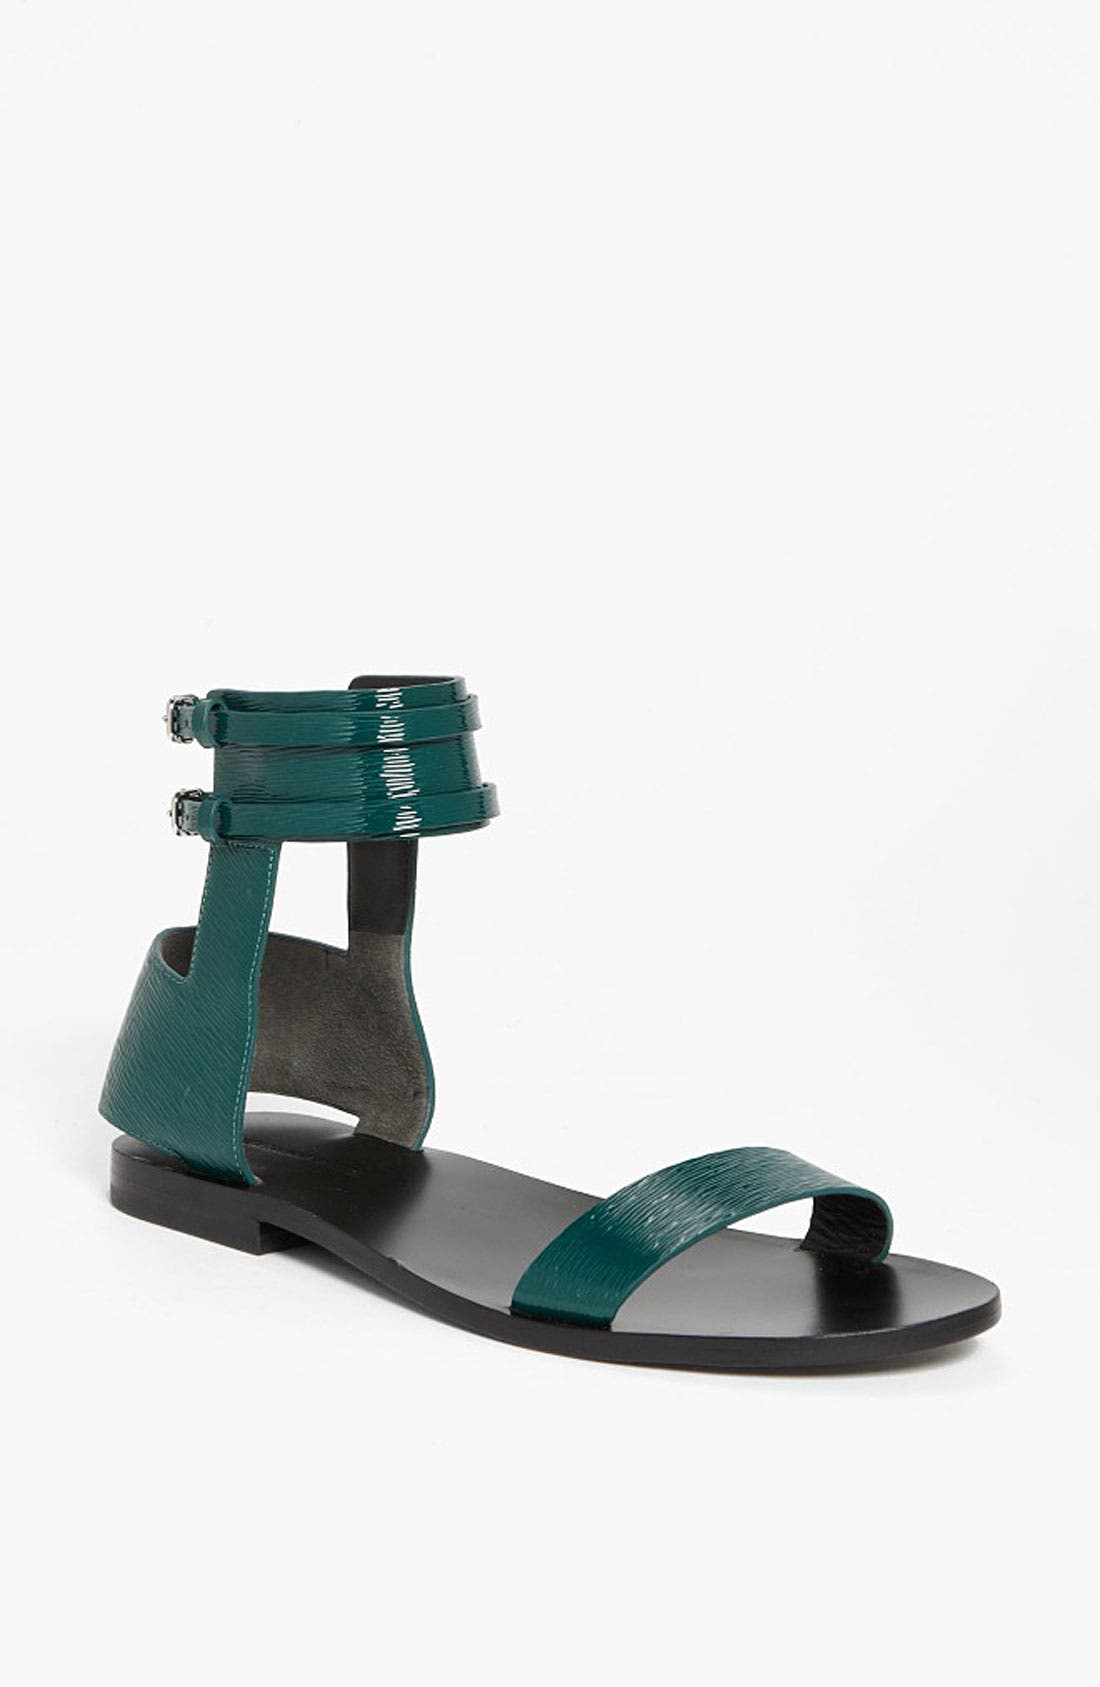 Alternate Image 1 Selected - Alexander Wang 'Alek' Sandal